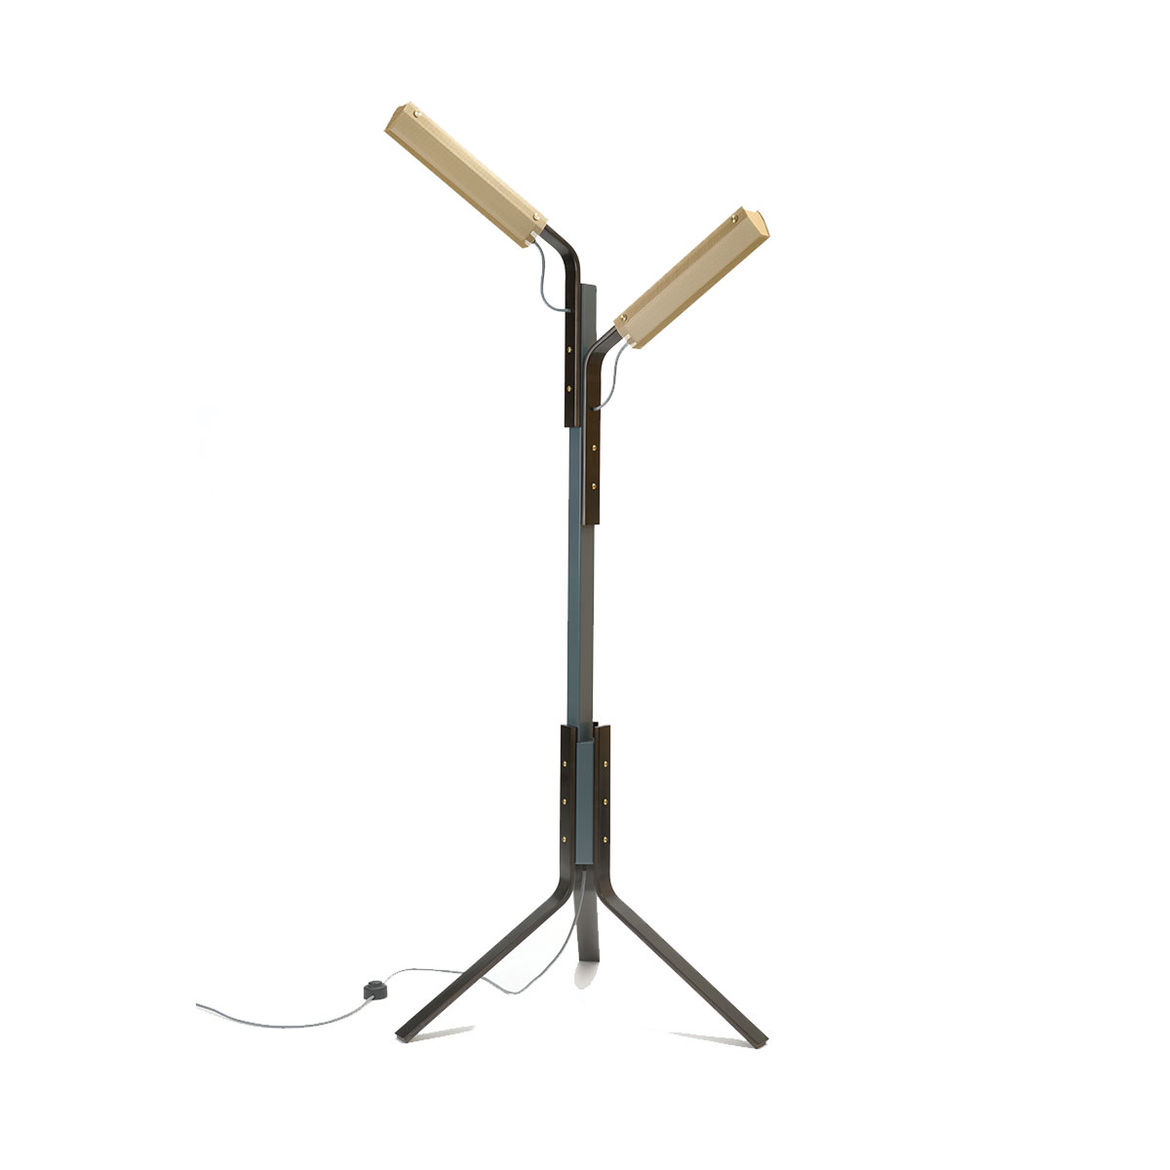 Floor lamp with industrial and organic inspiration